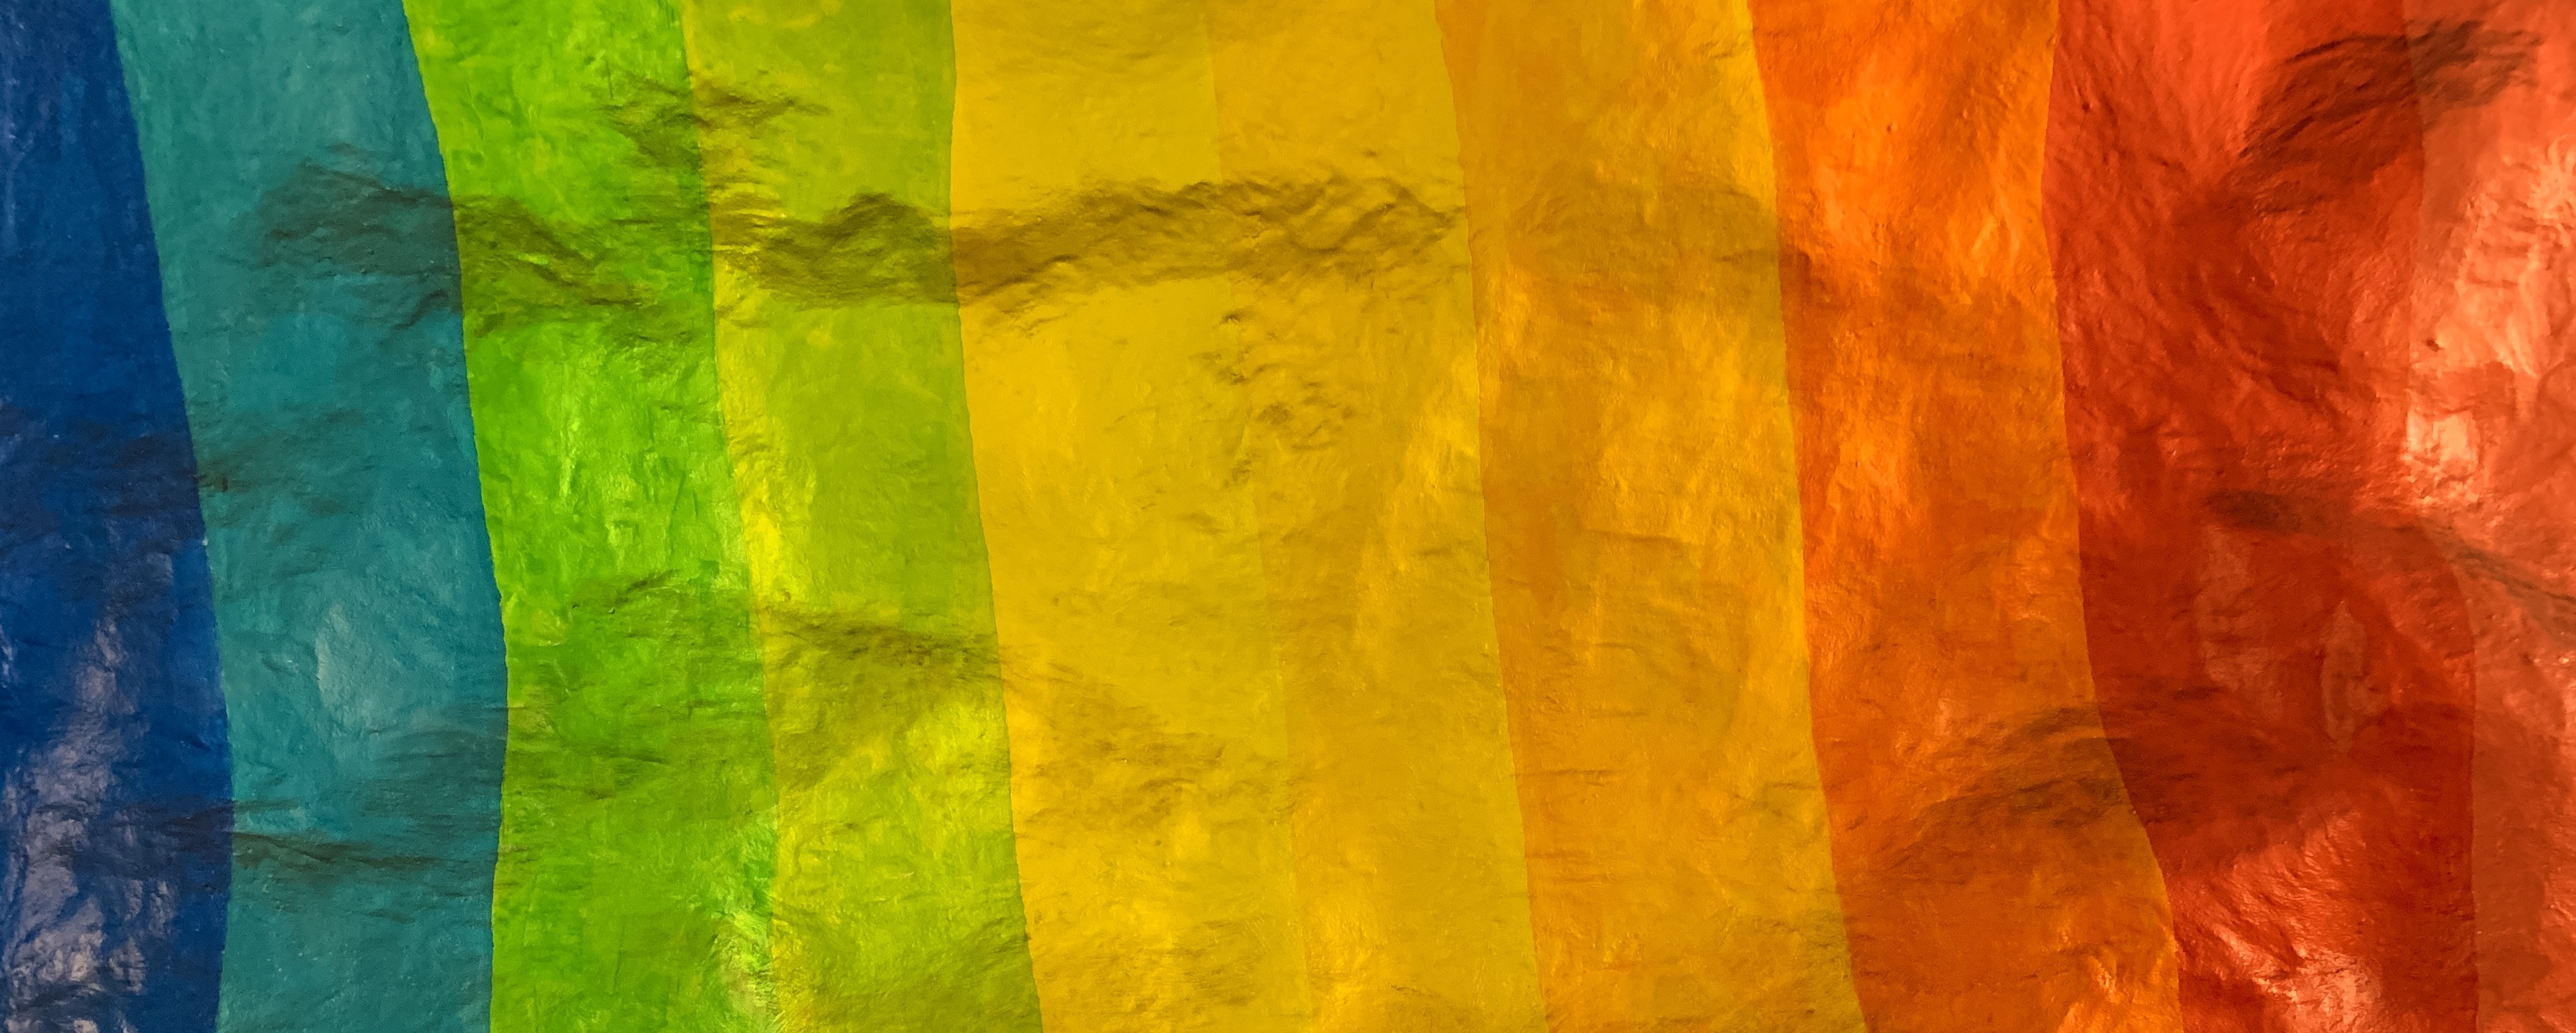 image featuring rainbow colors